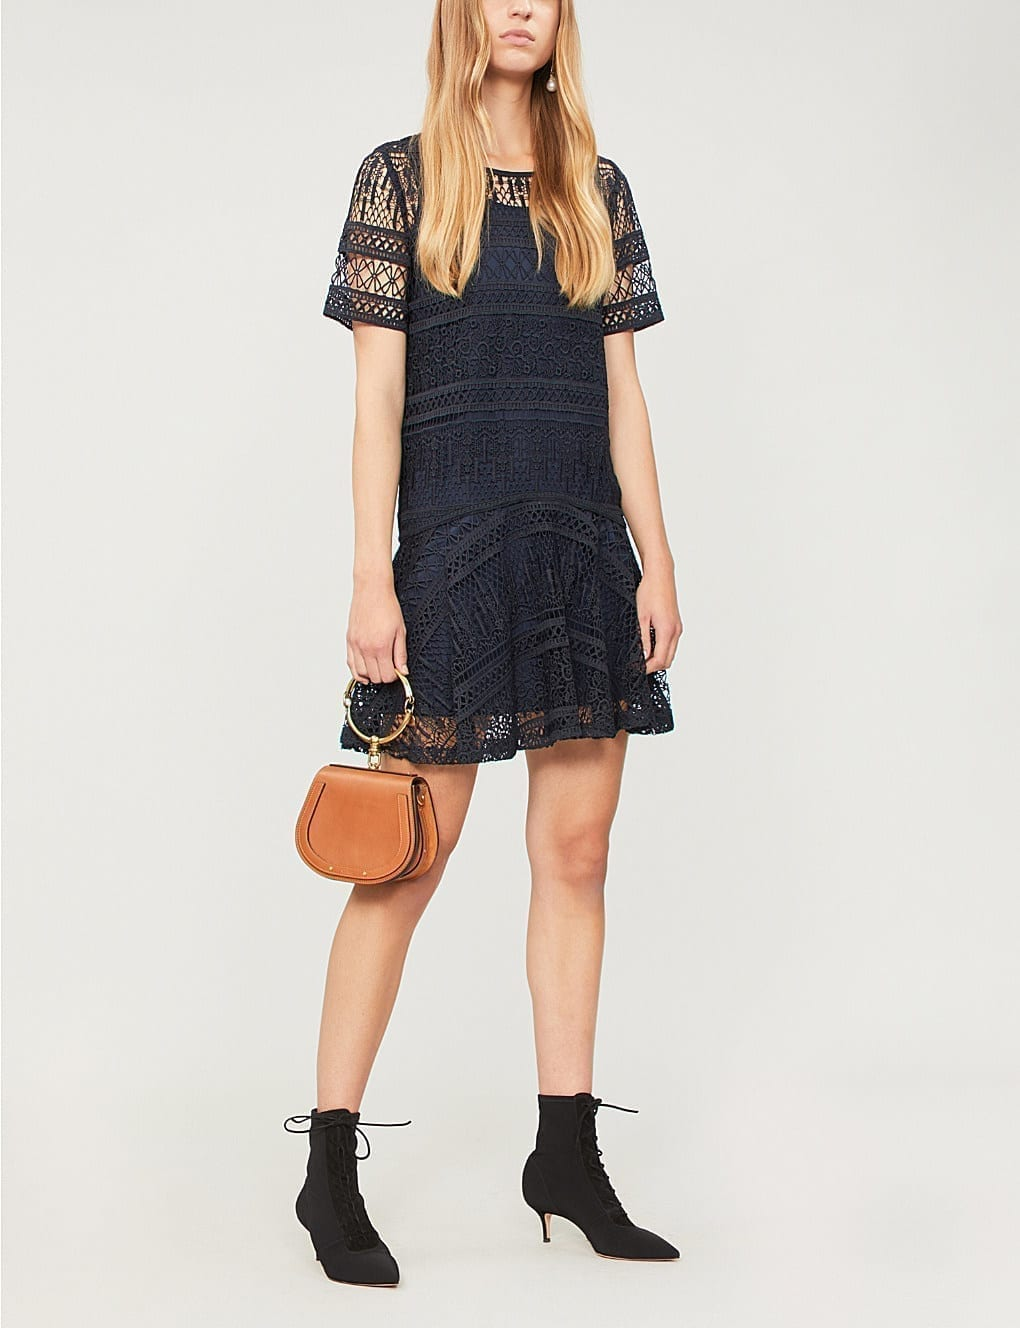 37bc6a5fb0b5 REISS Linda Embroidered Lace Shift Navy Dress - We Select Dresses